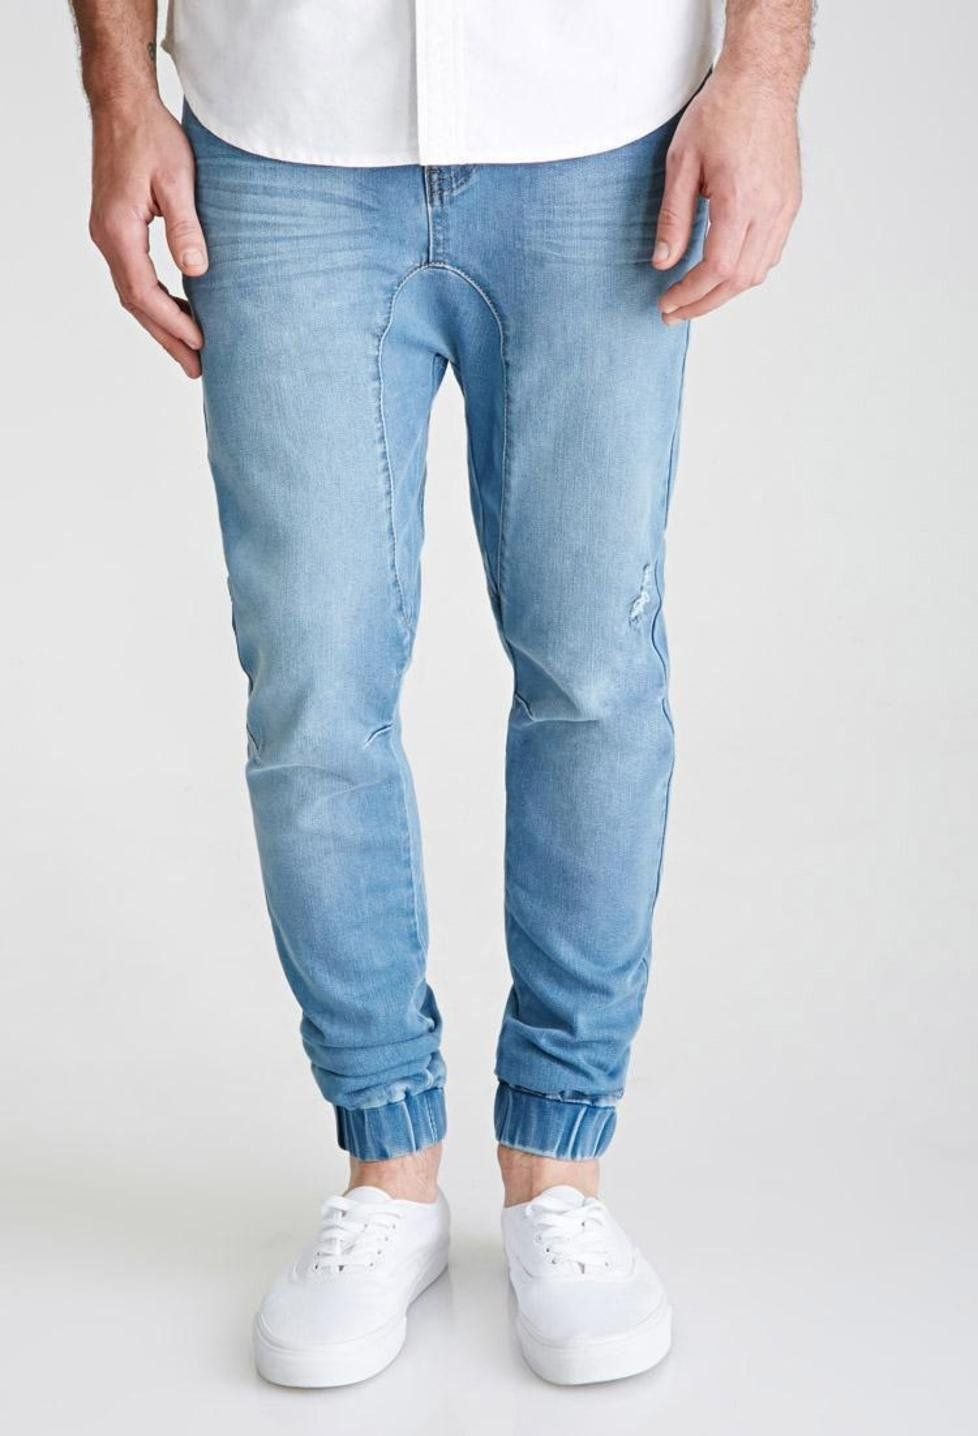 892cc456e36ece Pin by Not Yours on pants | Denim joggers, Denim jeans men, Light ...